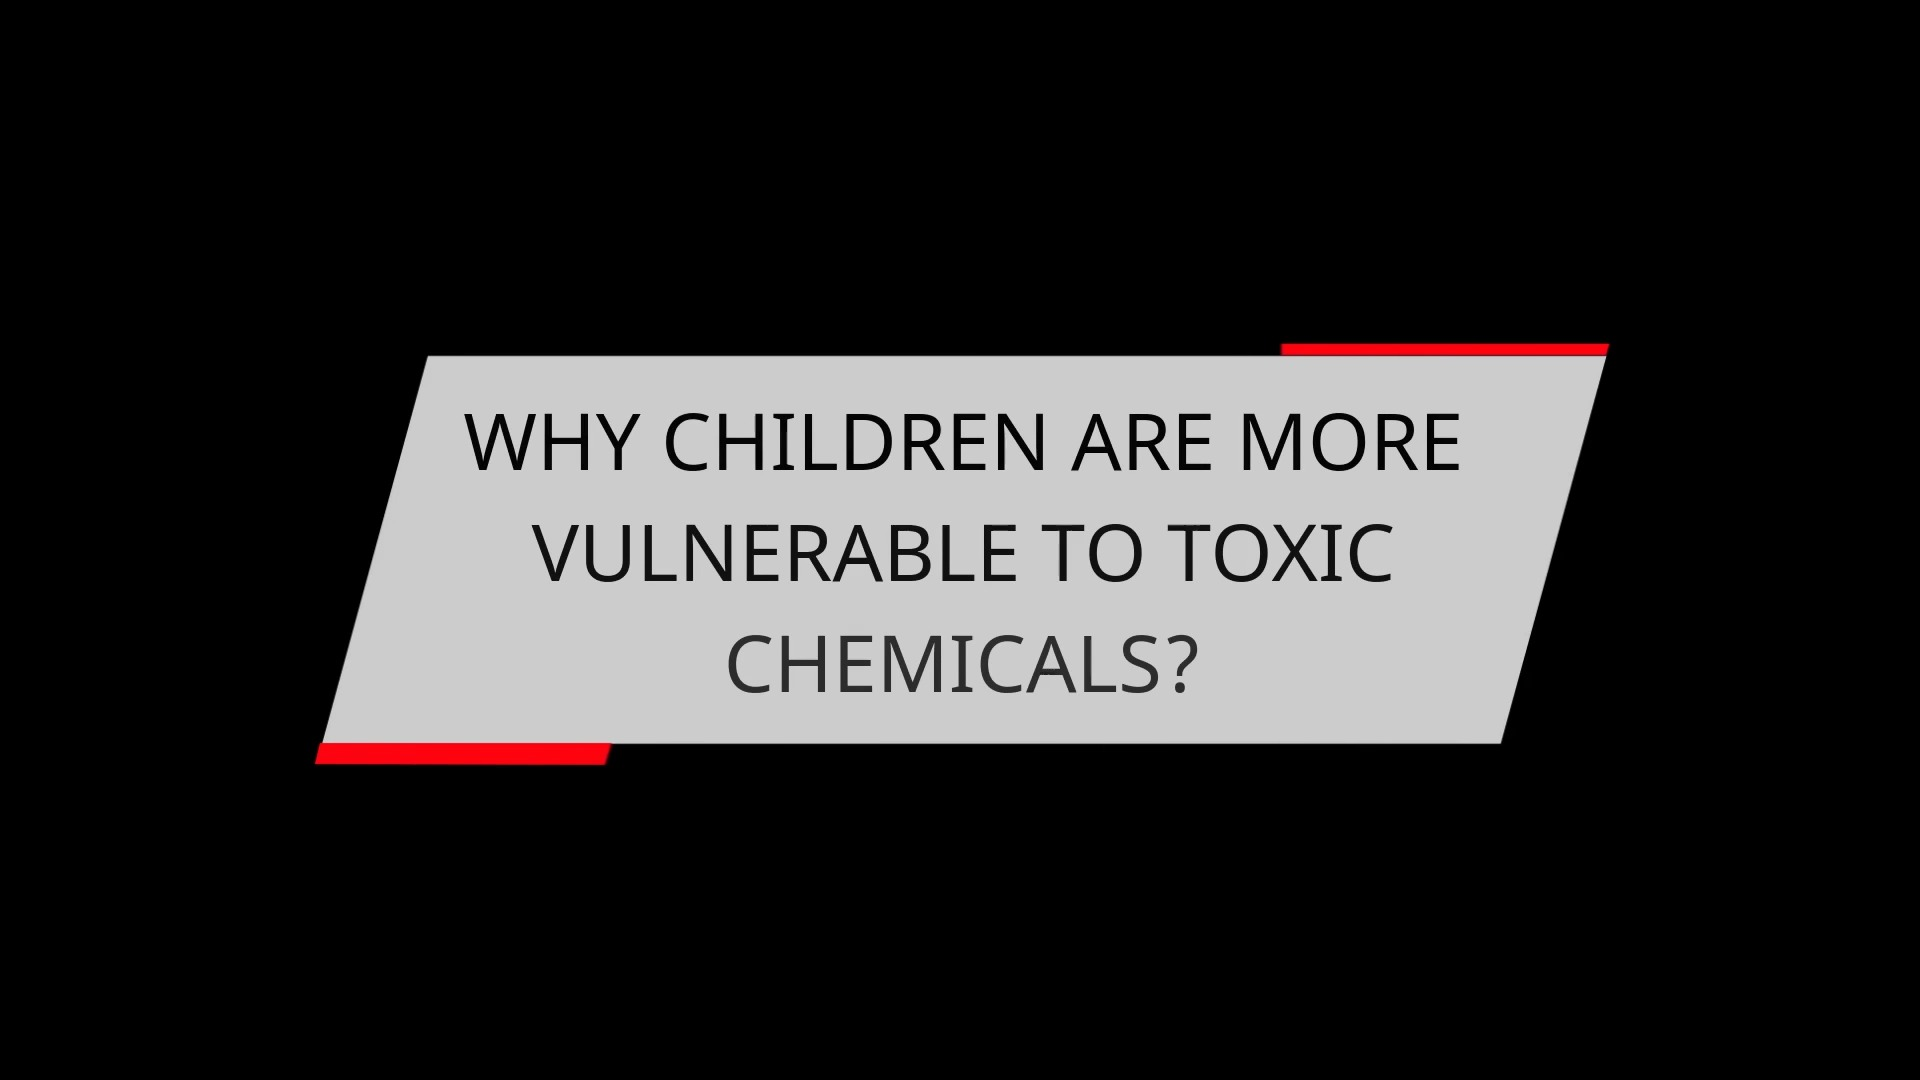 WHY CHILDREN ARE MORE VULNERABLE TO TOXIC CHEMICALS